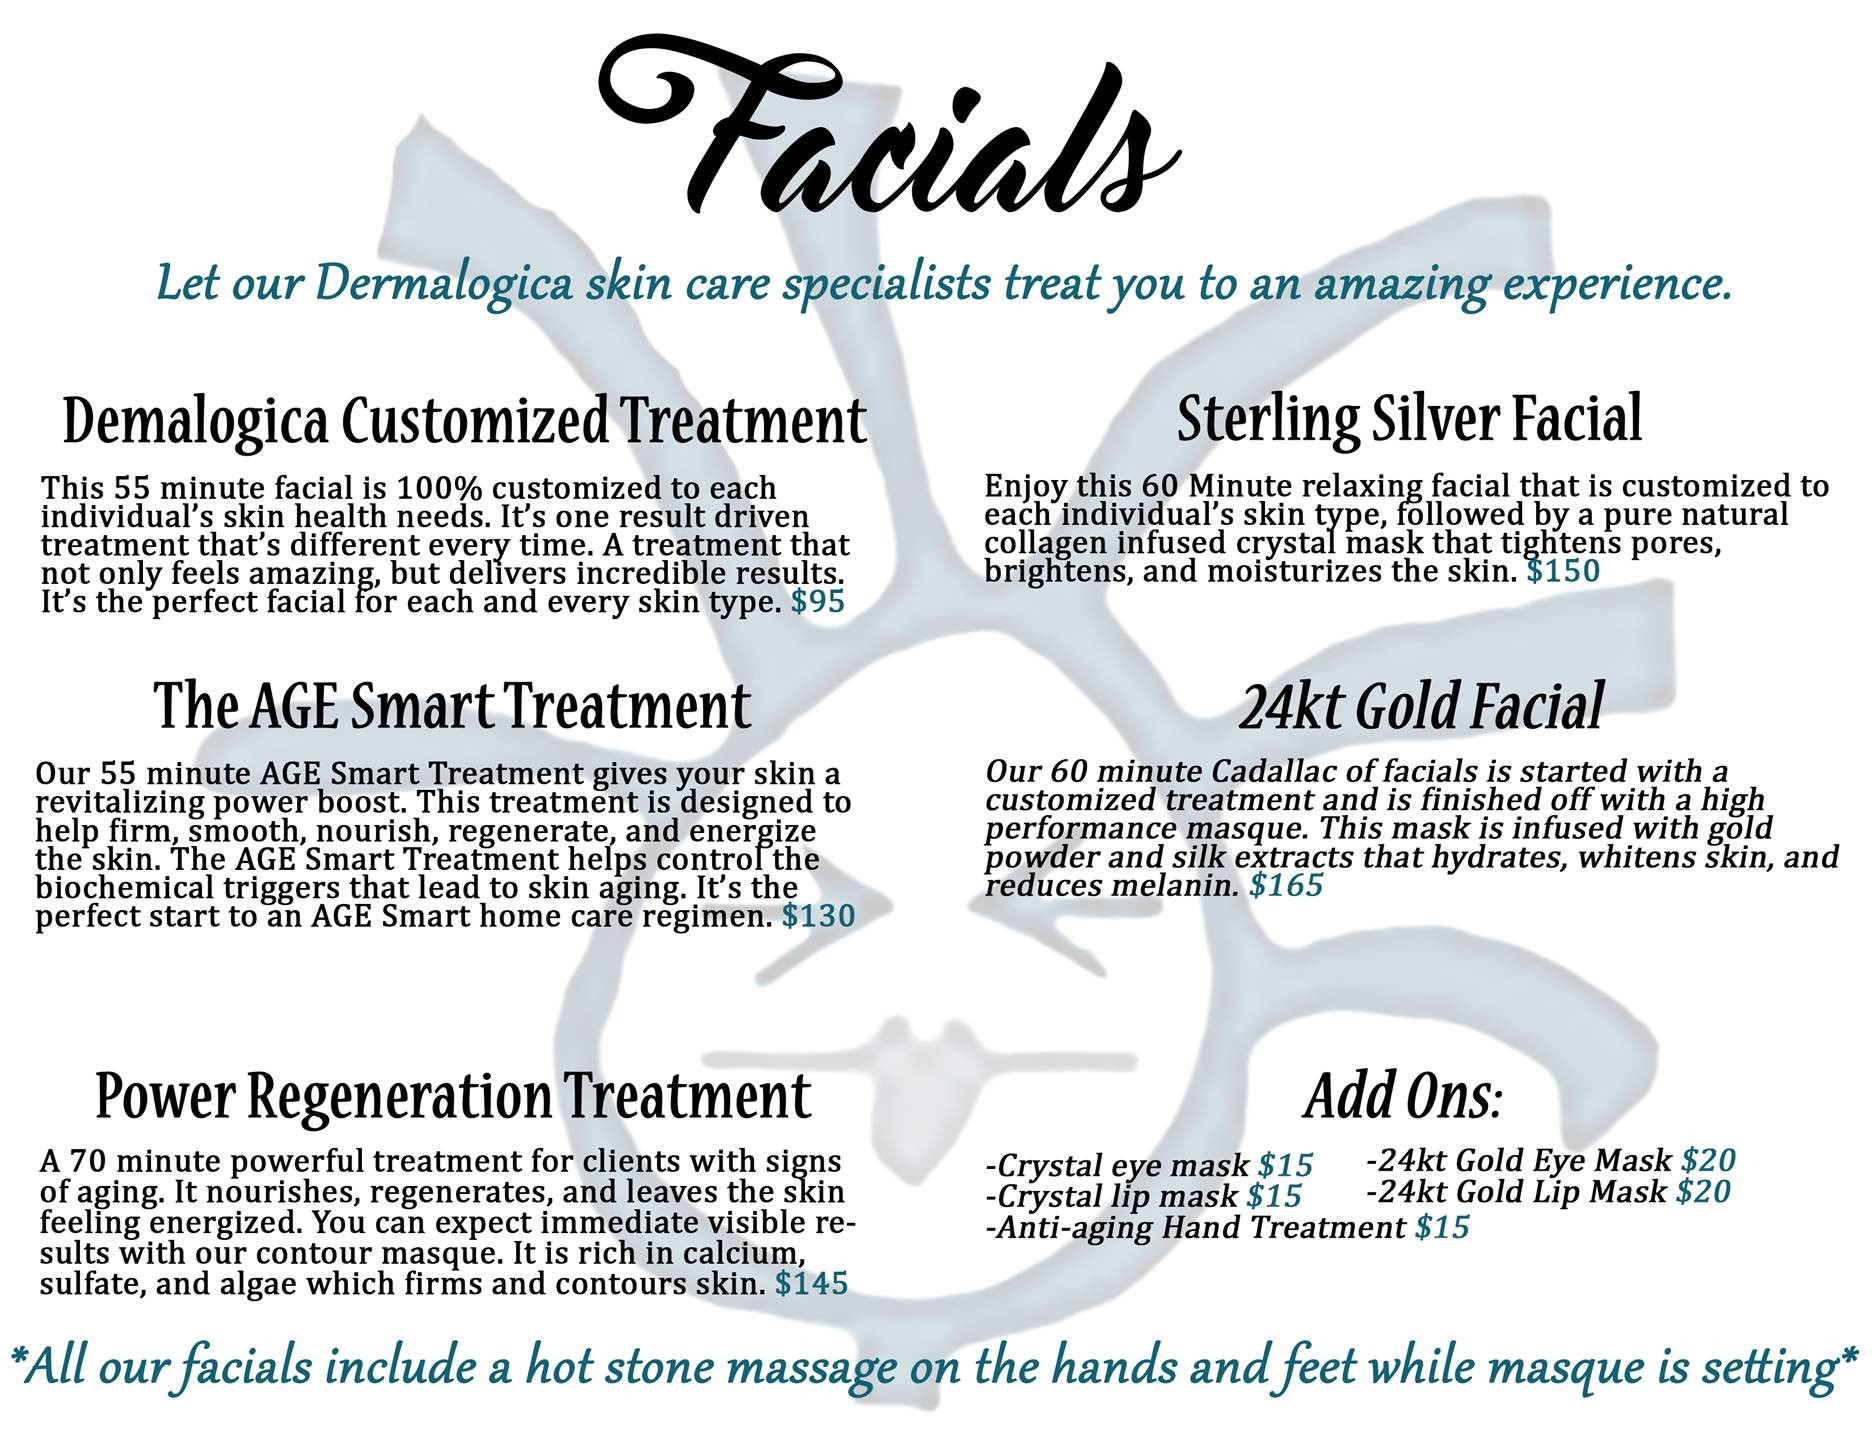 Skin Care Services - Signature Facials & Gentlemens Facial